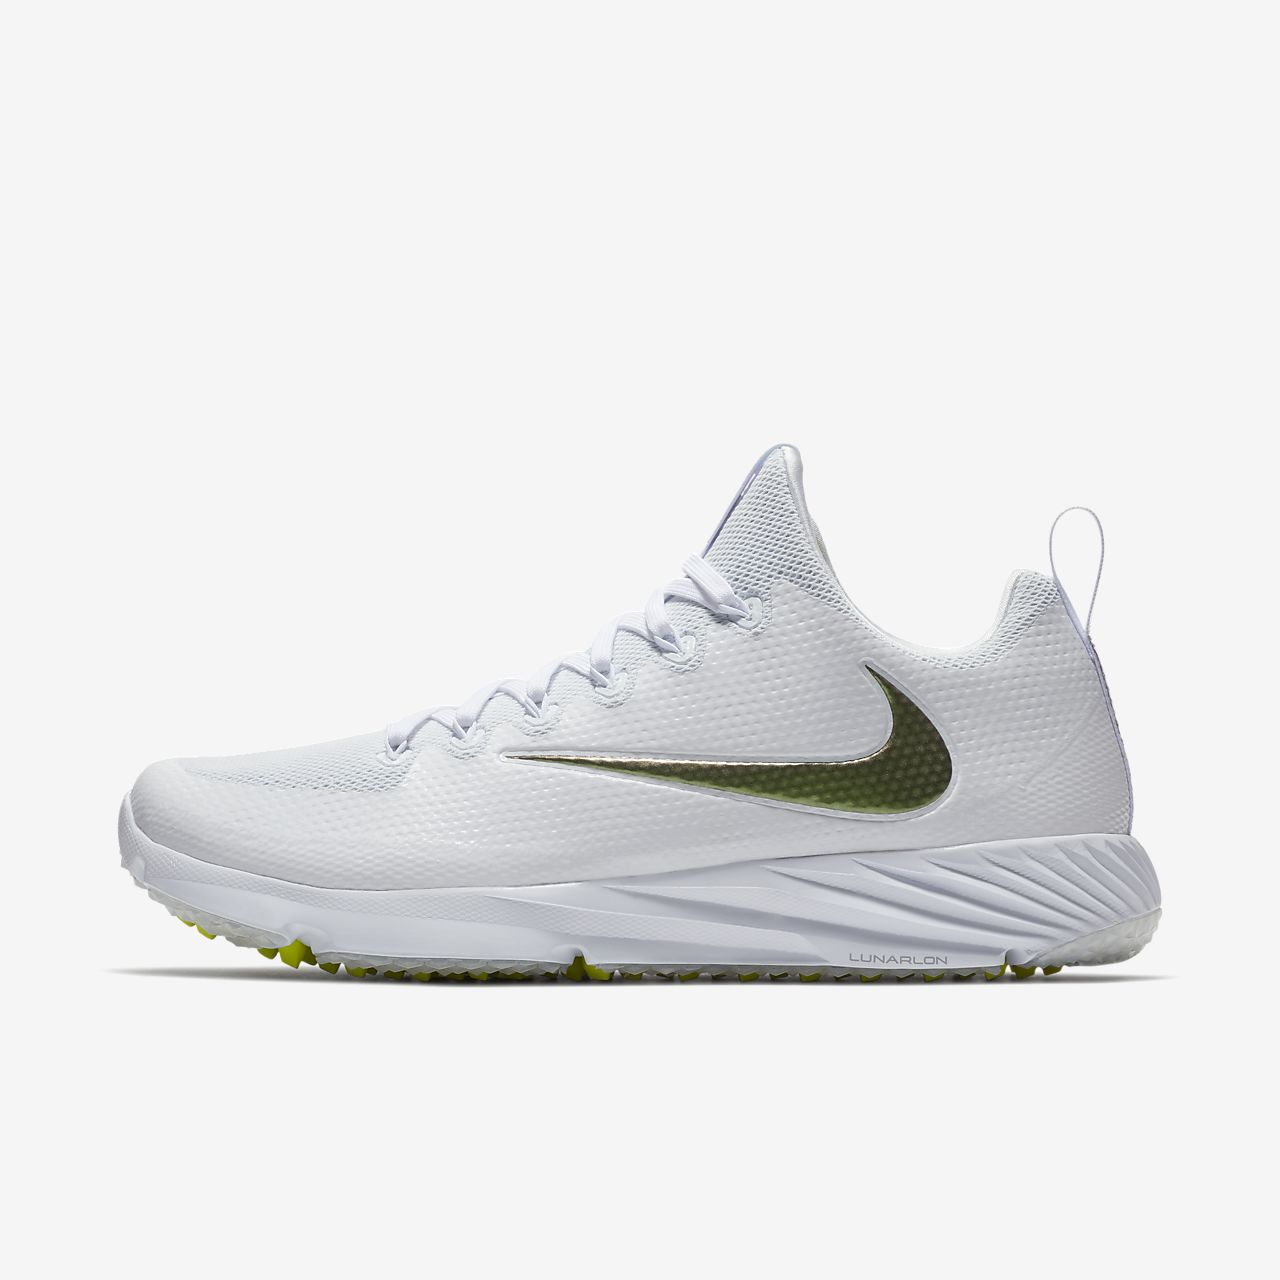 nike turf shoes